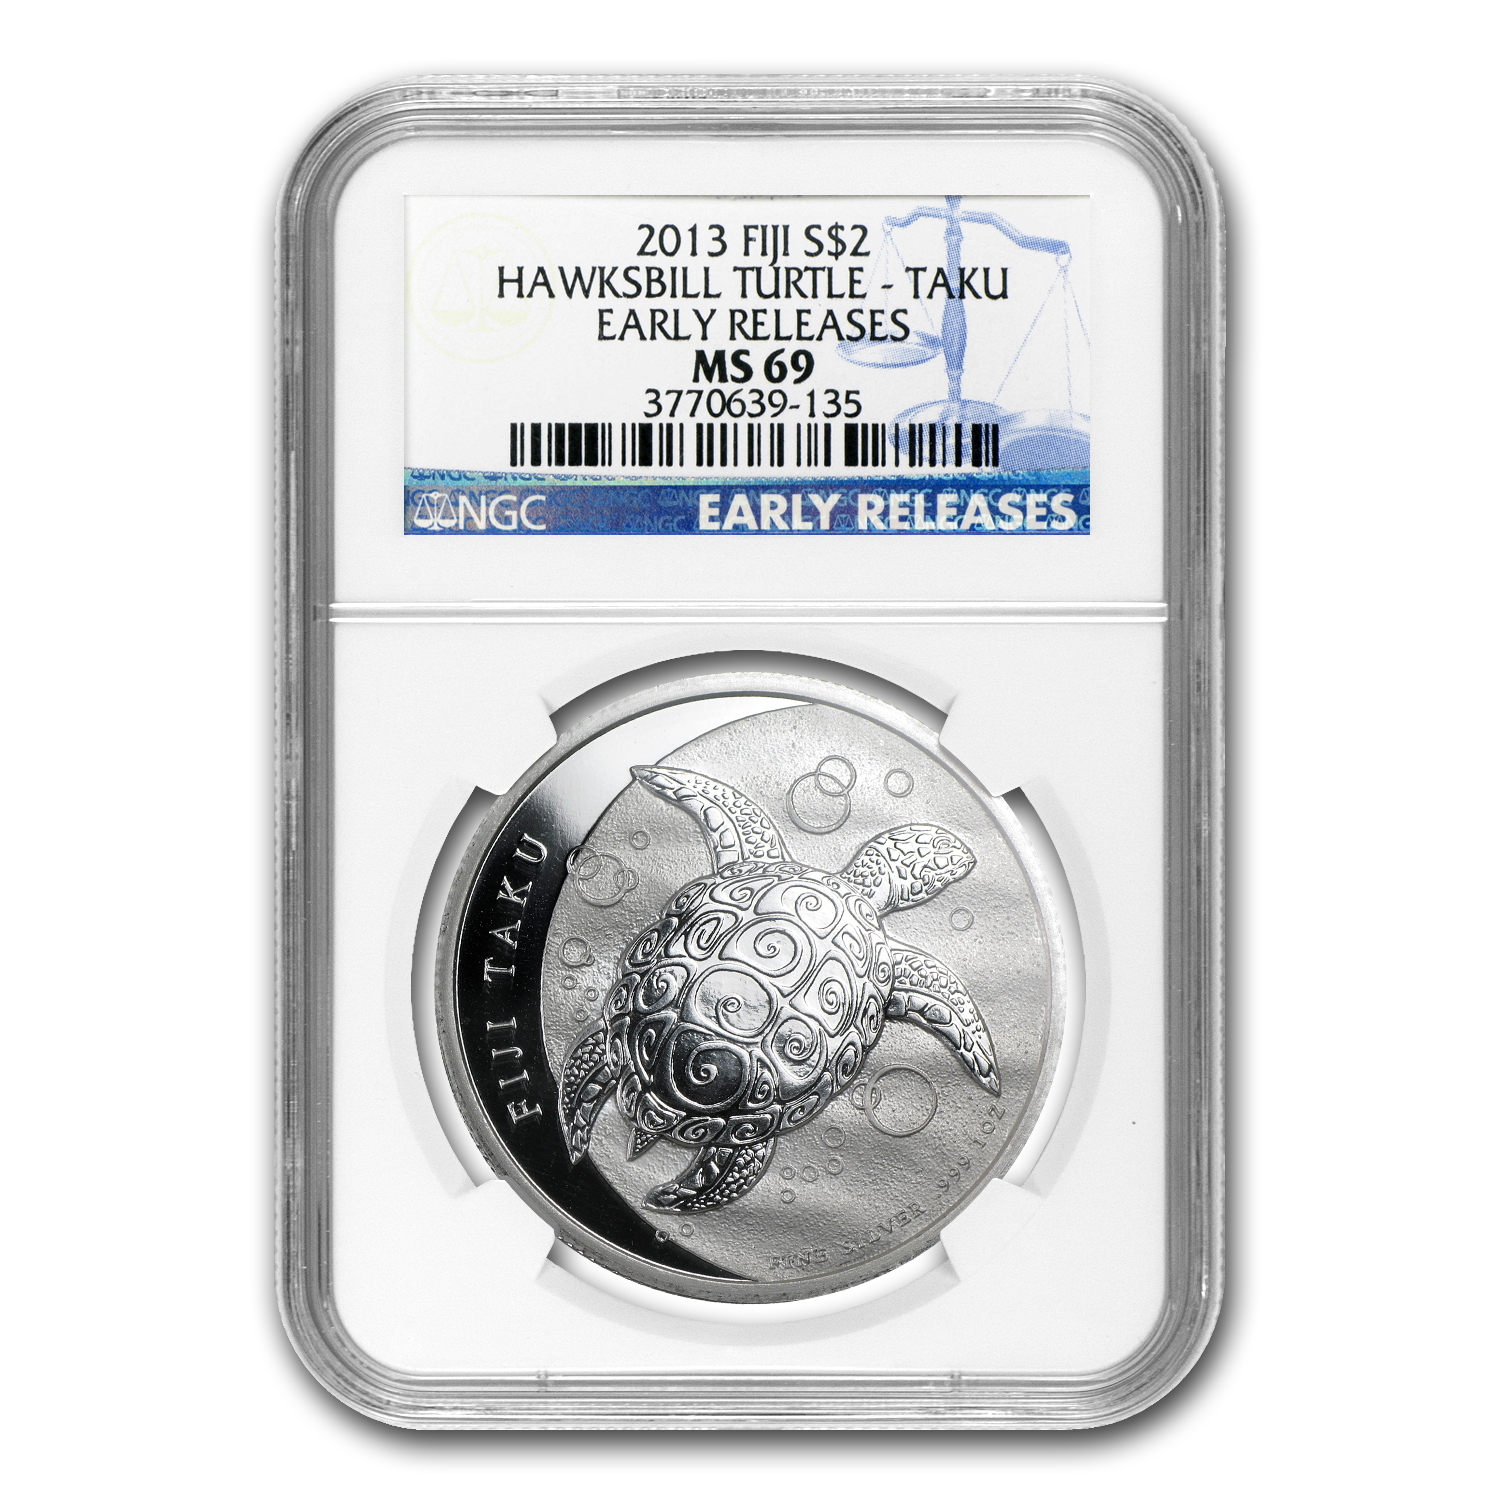 2013 Fiji 1 oz Silver $2 Taku MS-69 NGC (Early Release)